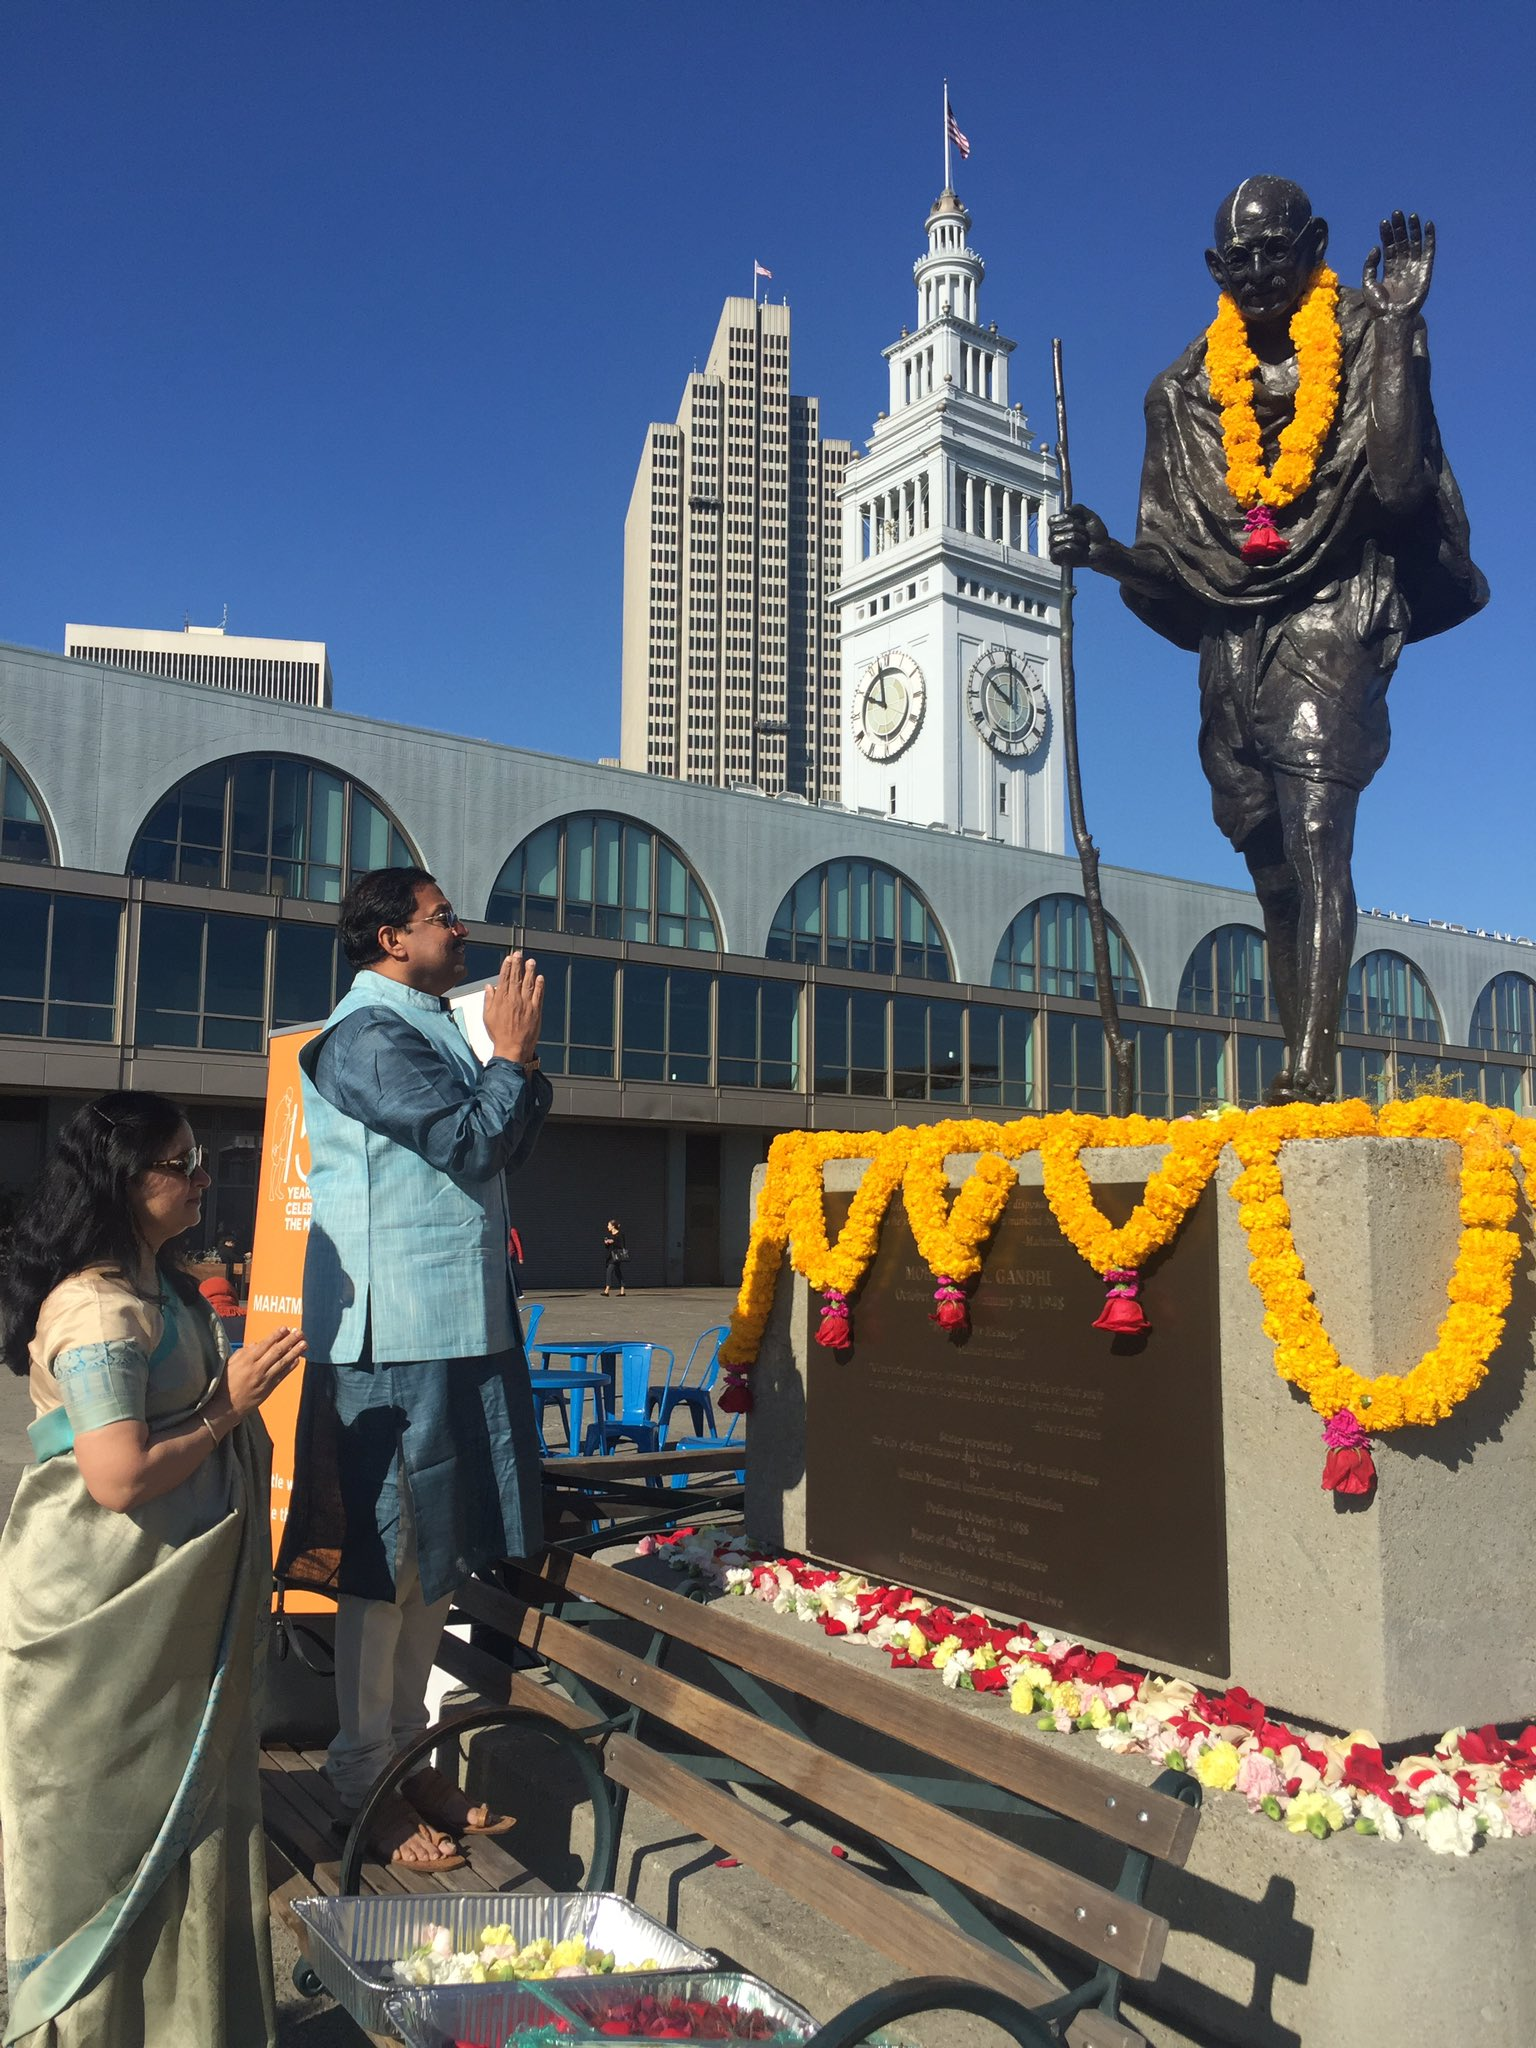 Consul General Sanjay Panda offered floral tributes at the iconic statue of Mahatma Gandhi at Ferry Building, Embarcadero to mark the 150th birth anniversary of Mahatma Gandhi